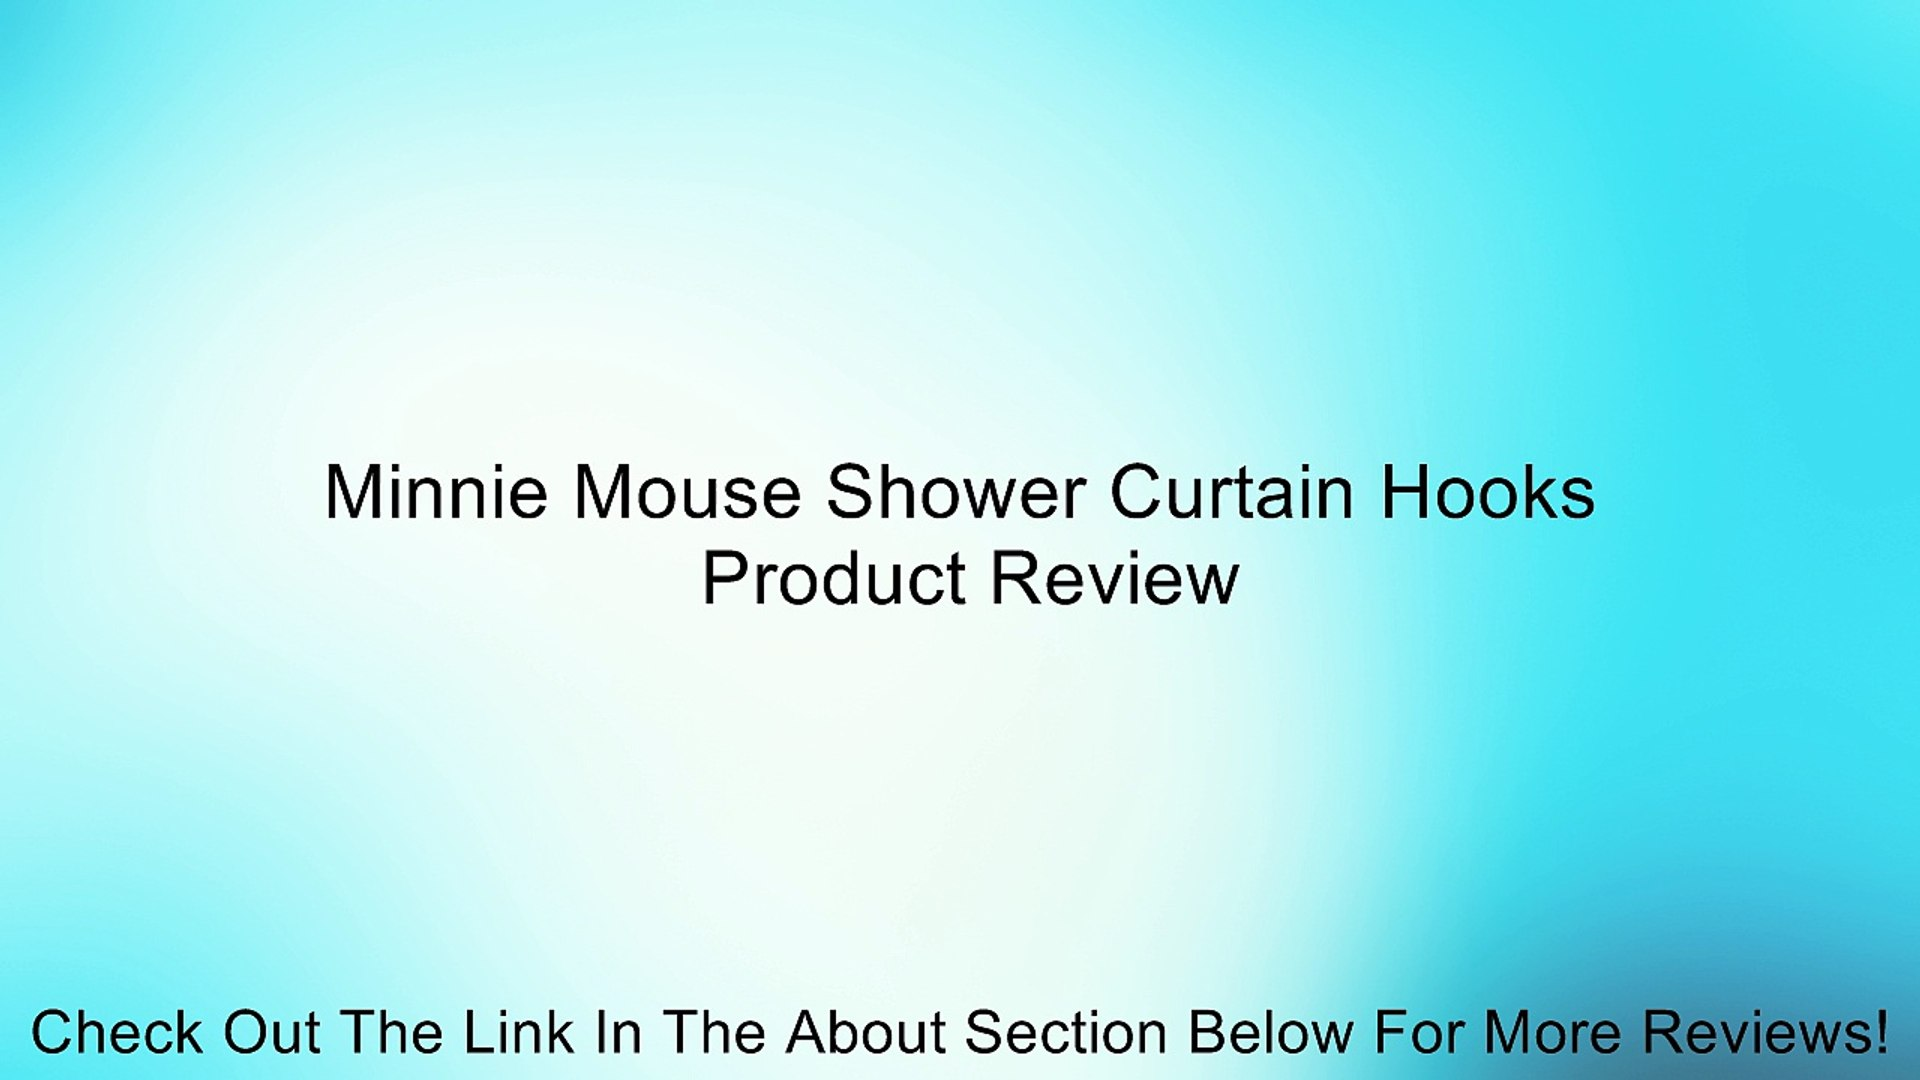 Minnie Mouse Shower Curtain Hooks Review